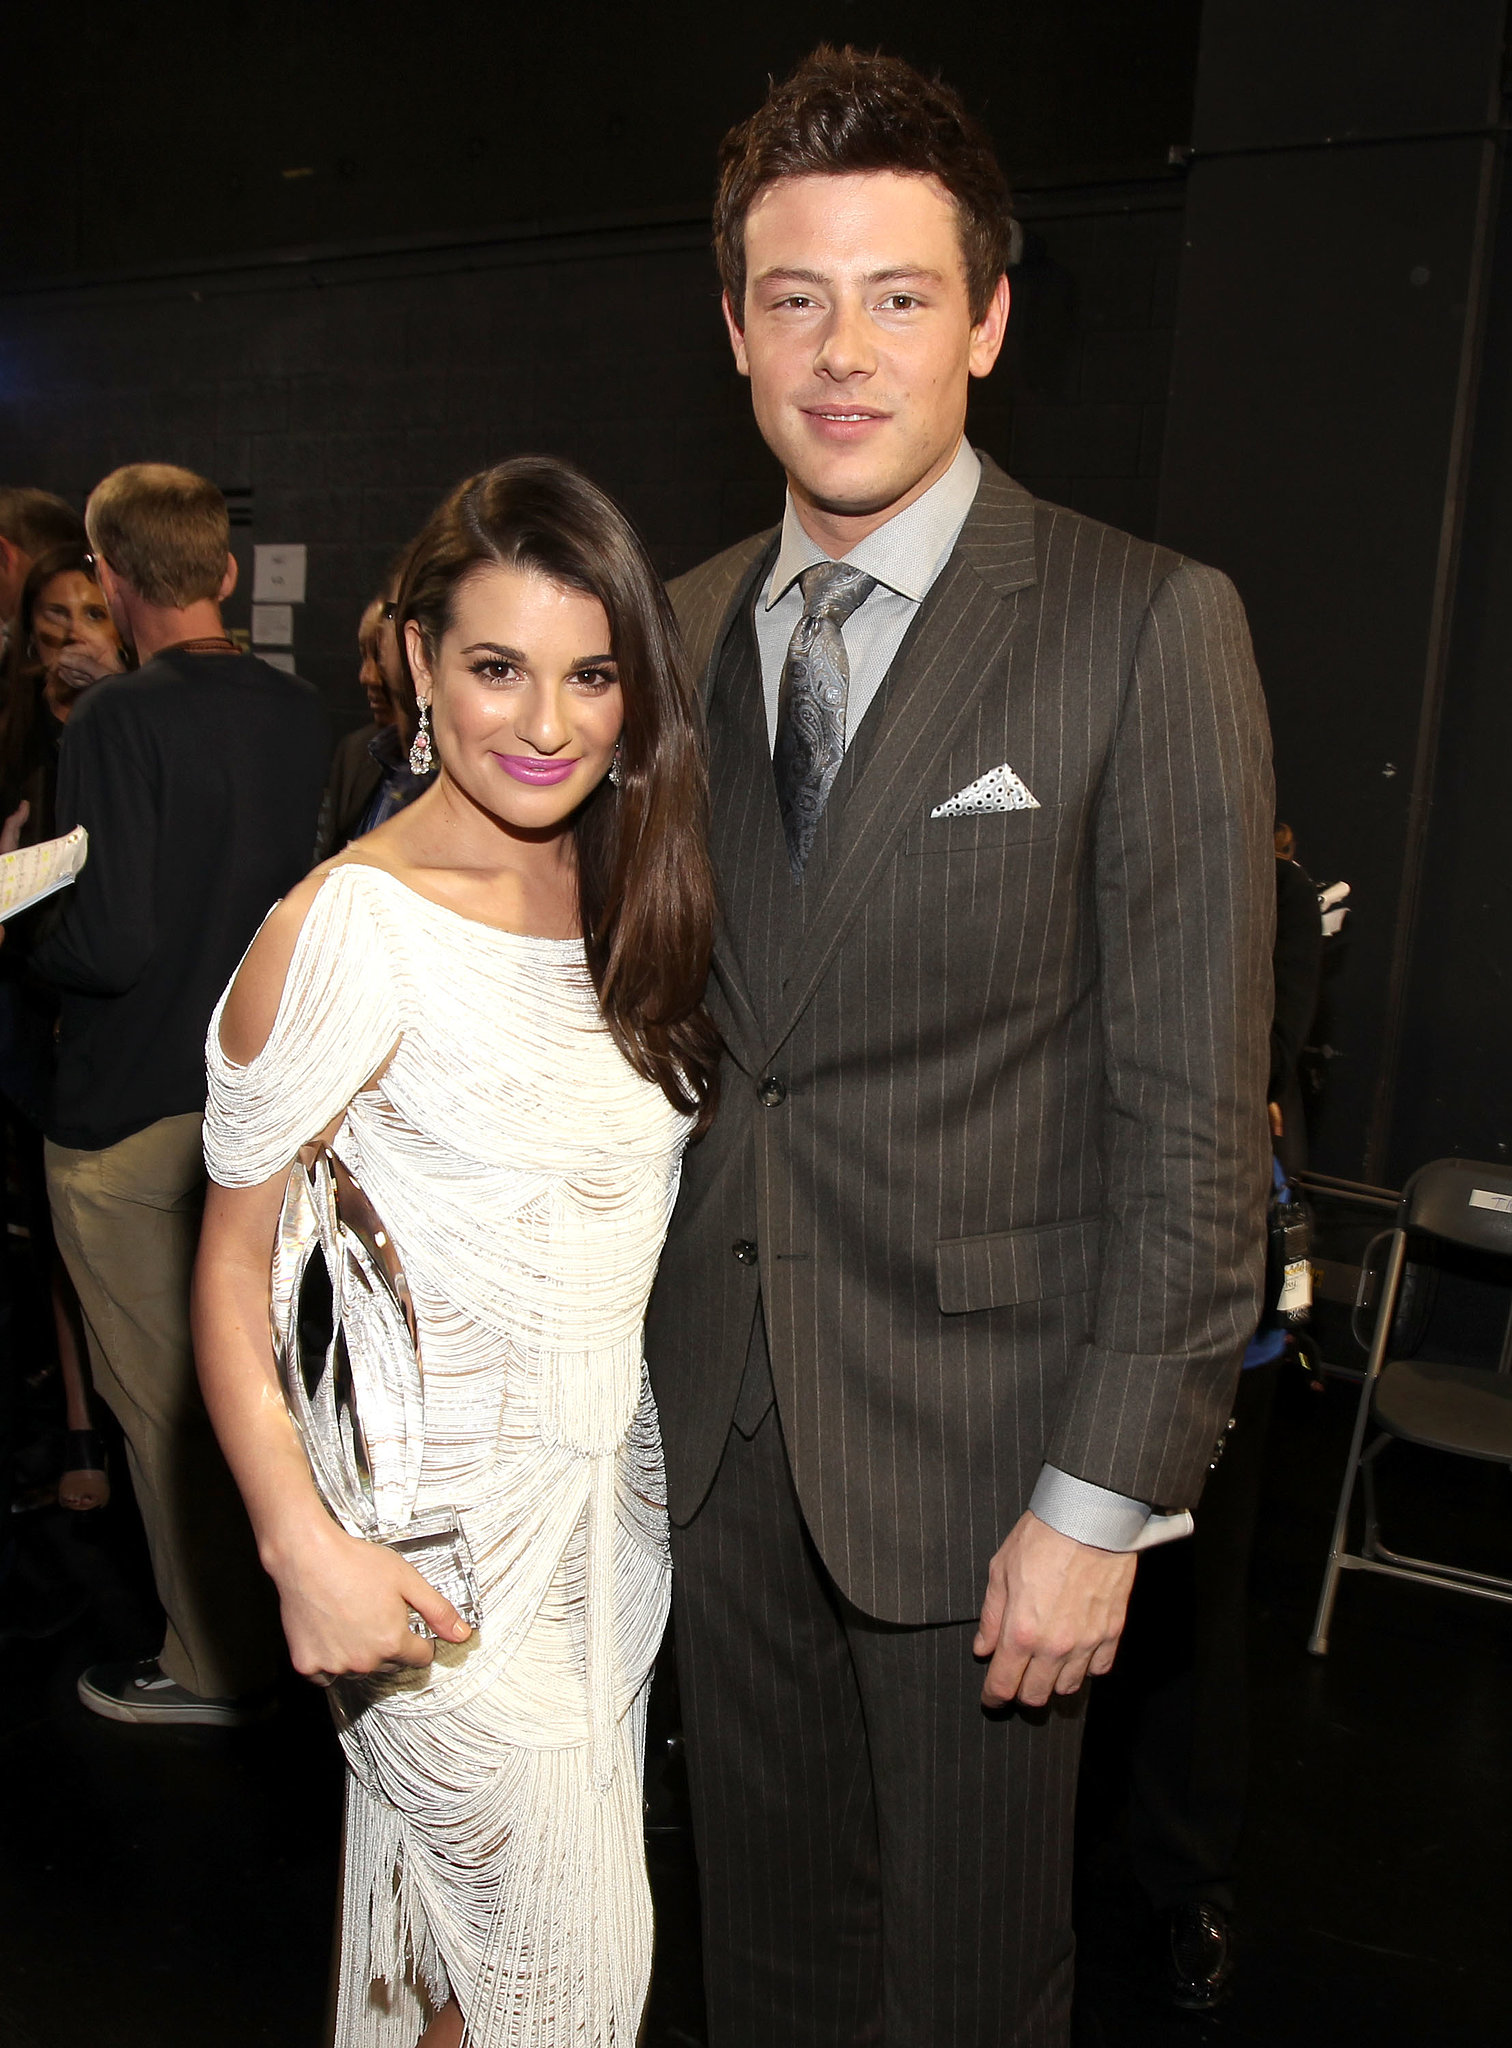 Lea Michele and Cory Monteith met up backstage at the 2012 People's Choice Awards in LA.